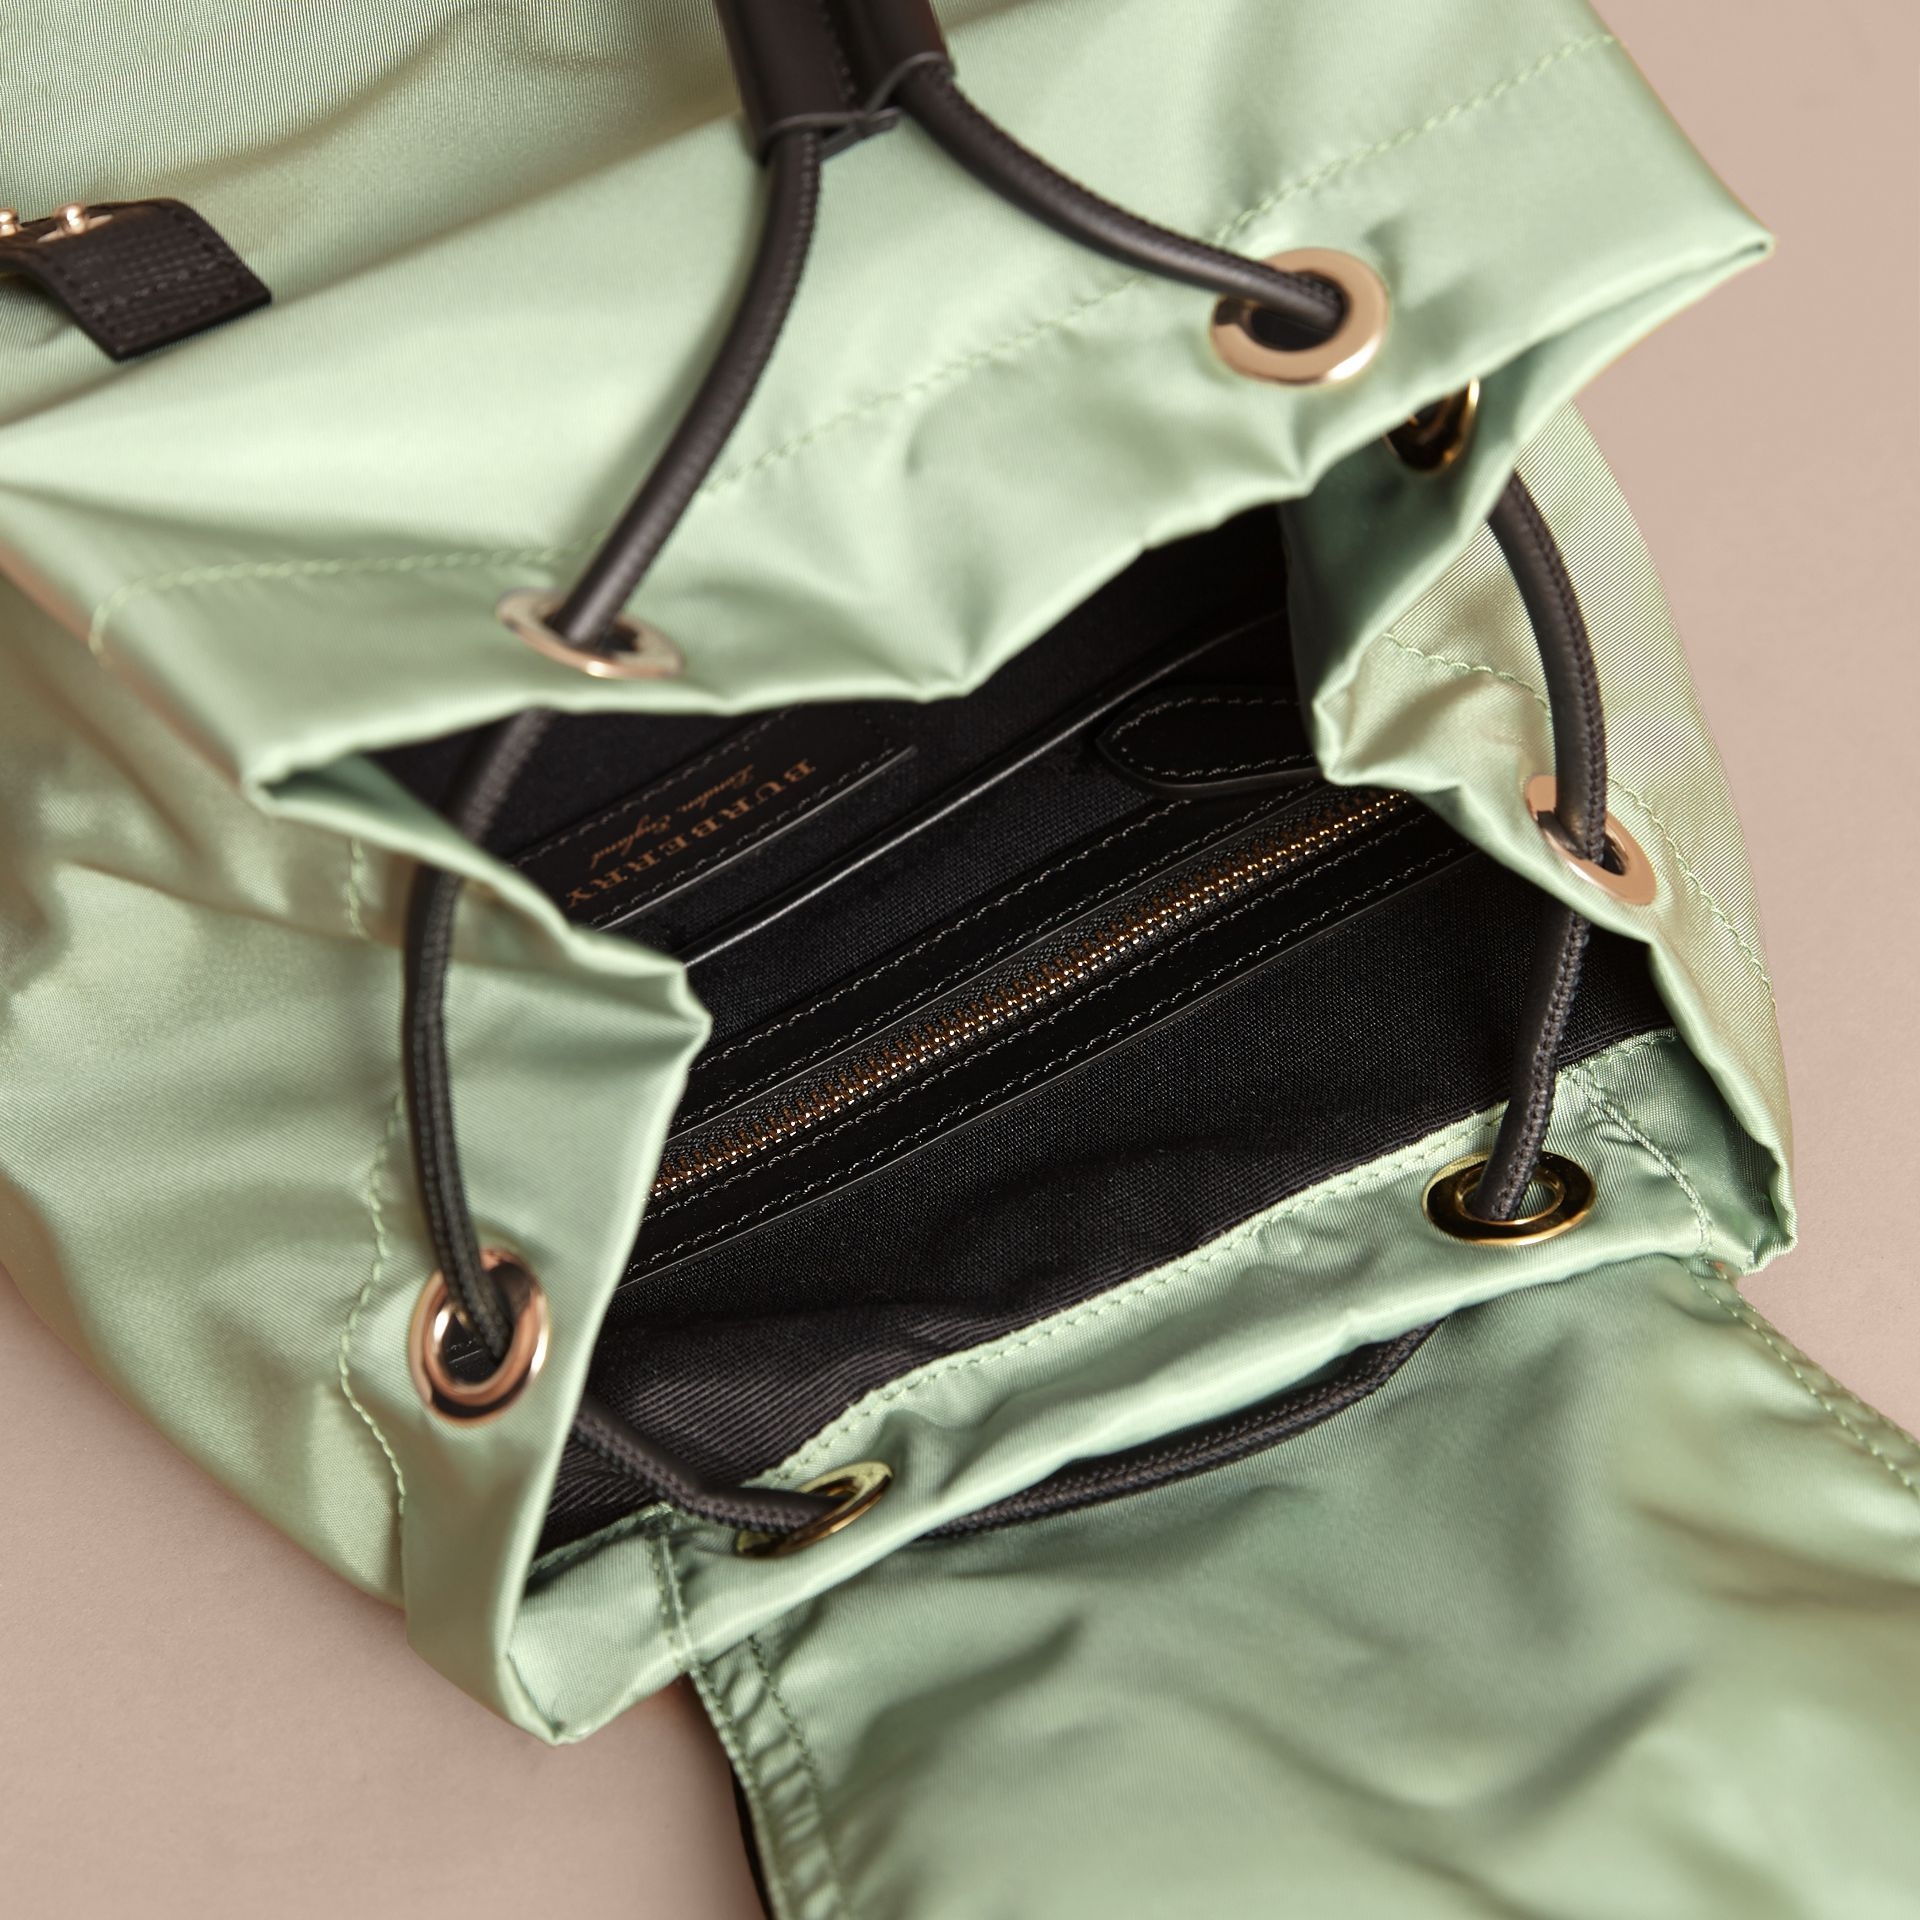 Sac The Rucksack medium en nylon technique et cuir (Vert Pomme) - Femme | Burberry - photo de la galerie 5